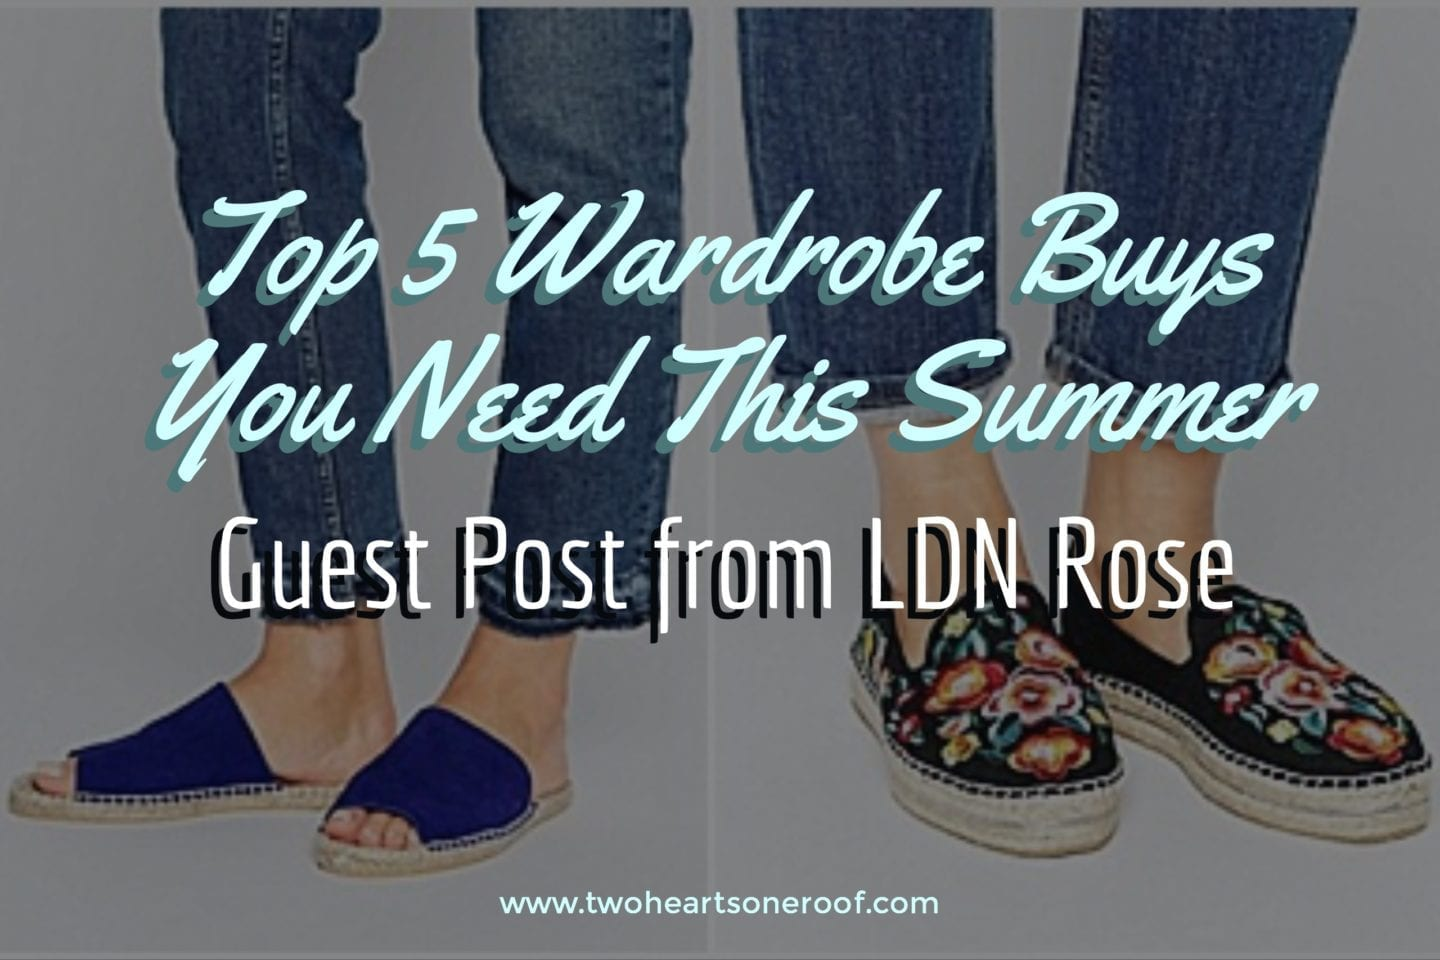 Guest Post from LDN Rose – Top 5 Wardrobe Buys You Need This Summer